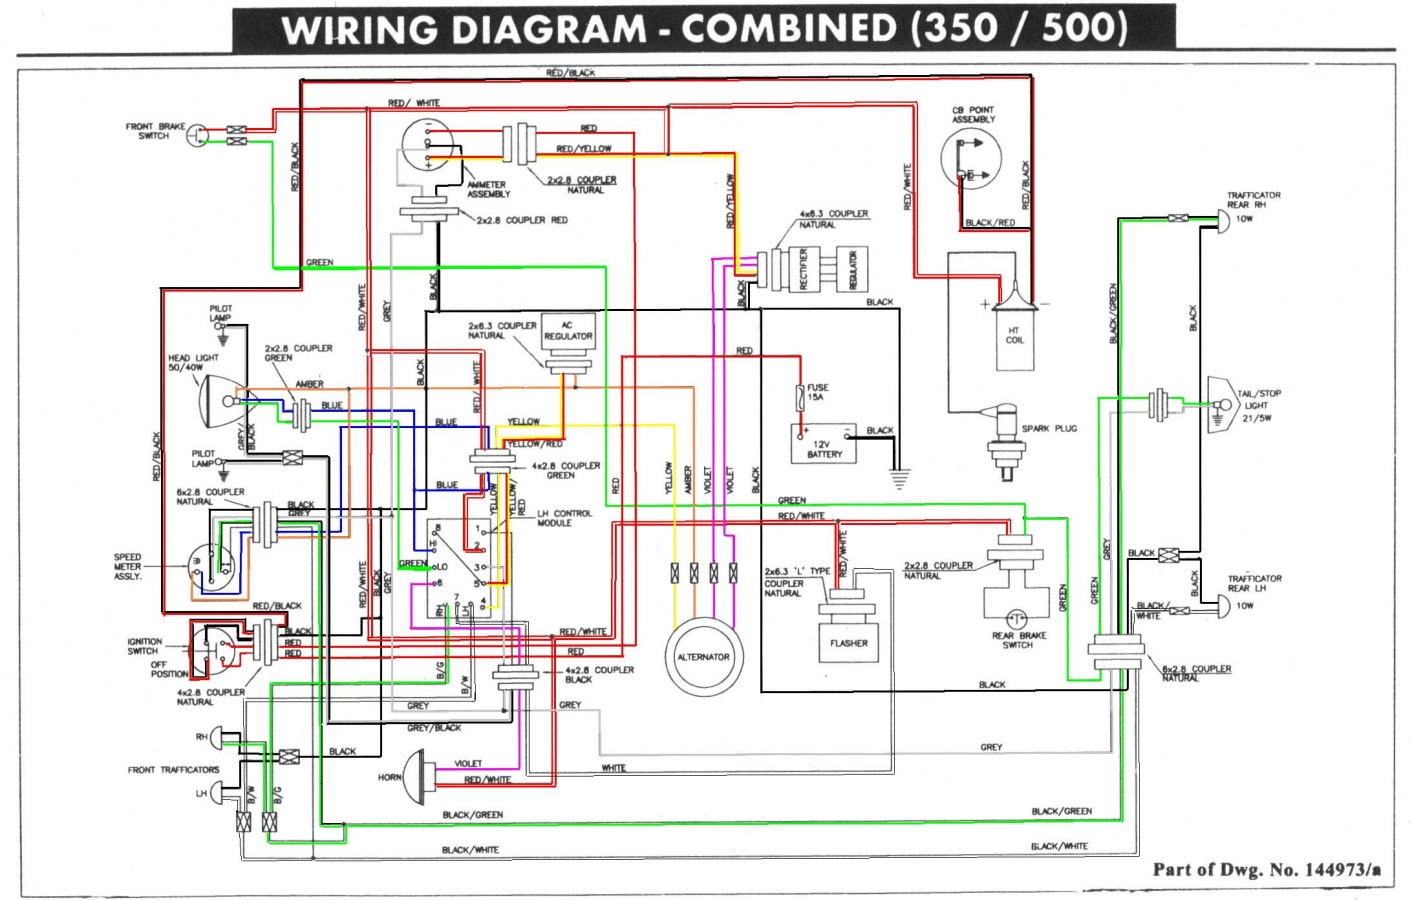 diagrams 875667 royal wiring diagrams royal enfield wiring dragster wiring diagram at aneh.co